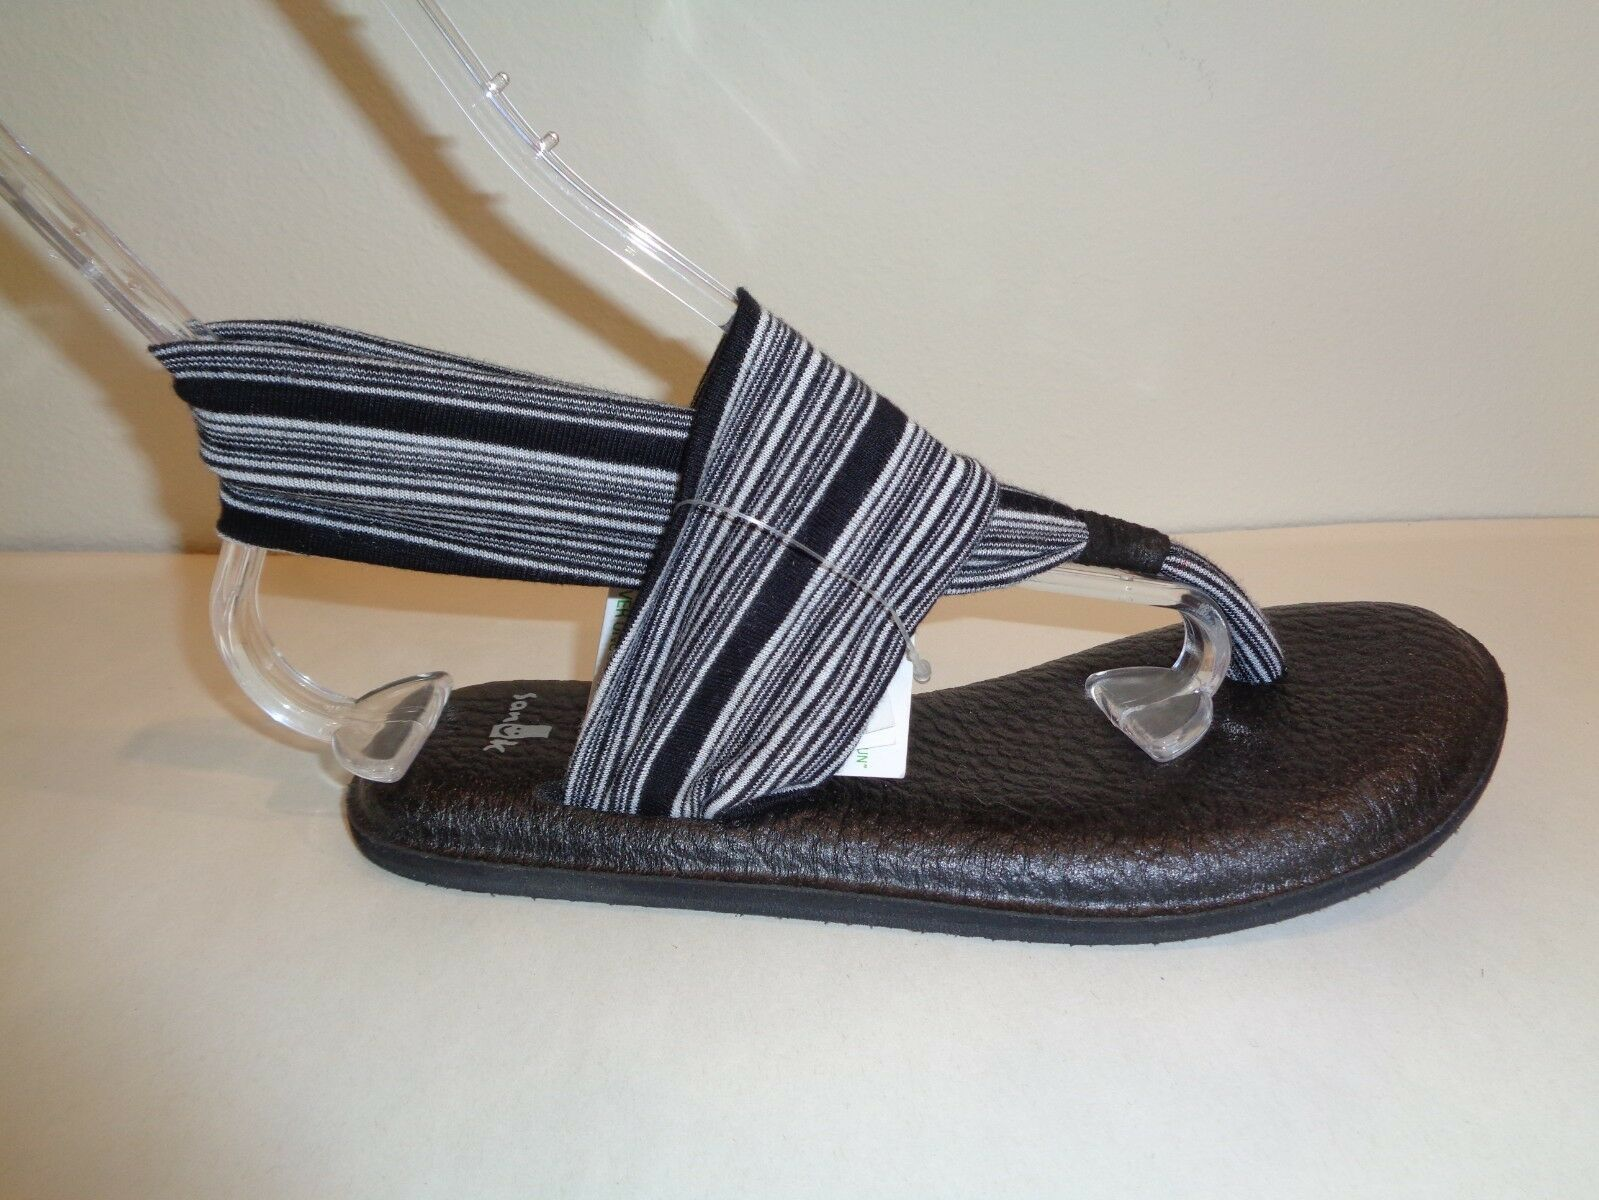 Sanuk Size 6 YOGA SLING 2 White Black Thong Slingbacks Sandals New Womens shoes